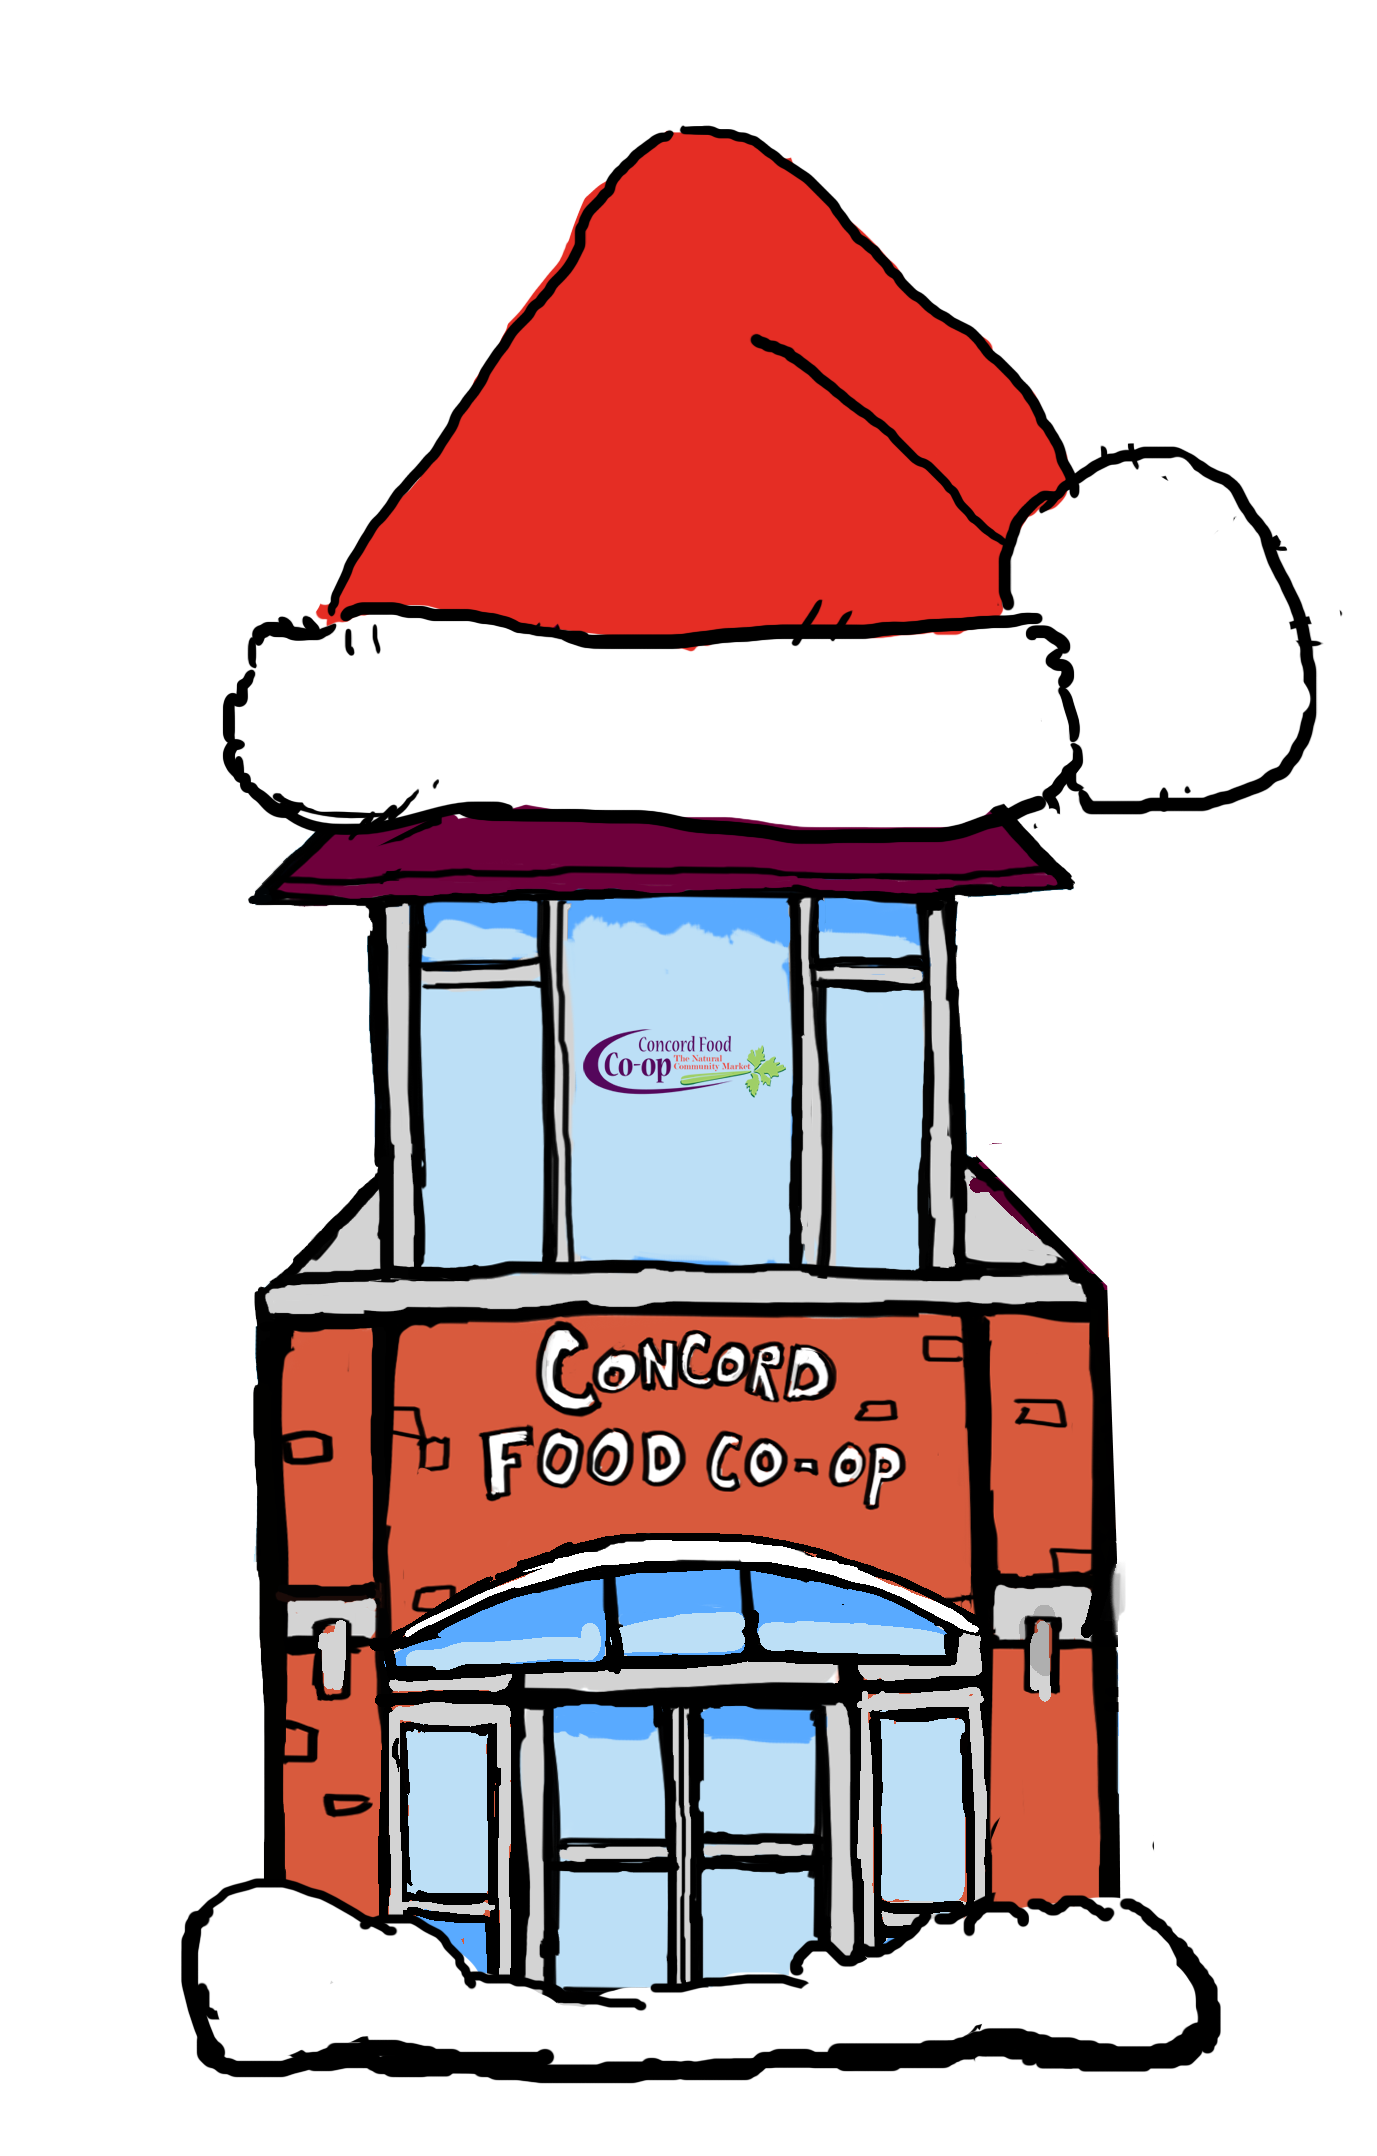 Holiday clipart holiday meal. Ordering concord food co